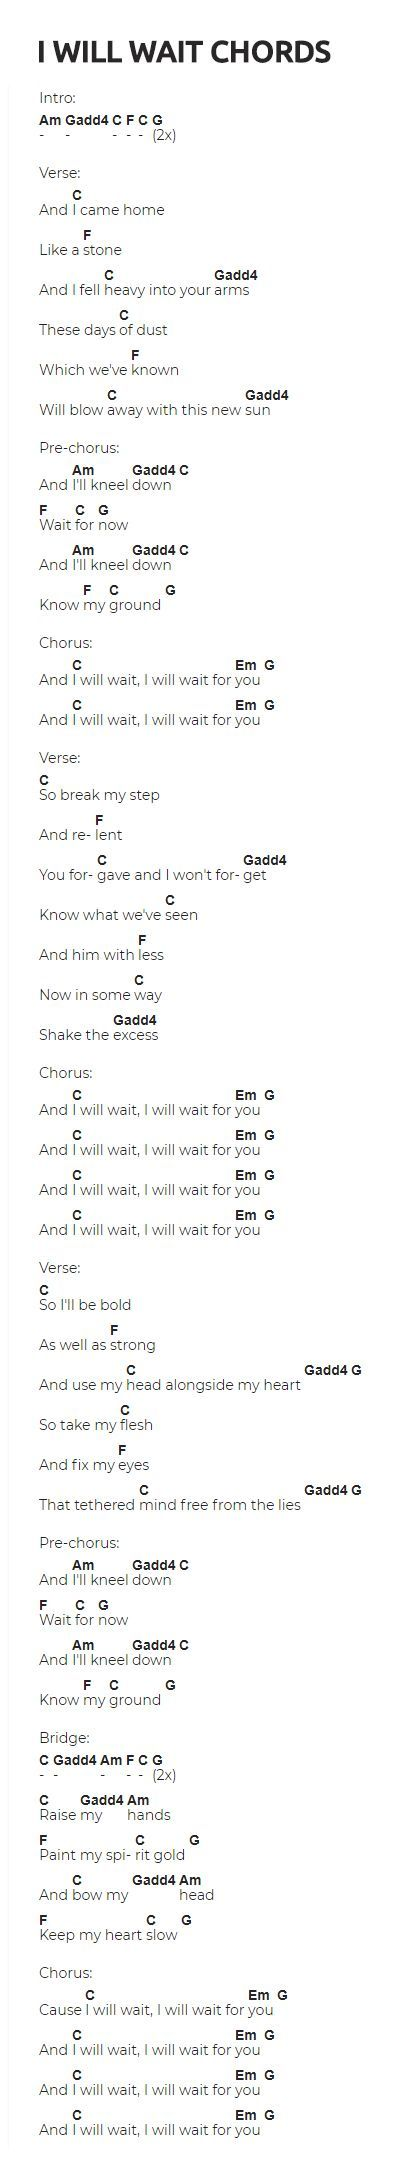 I Will Wait Guitar Chords by Mumford and Sons. Visit the website for the video lesson. The chords are very easy to play! #music #guitar #guitarlessons #songs #chords #guitarlessonssongs